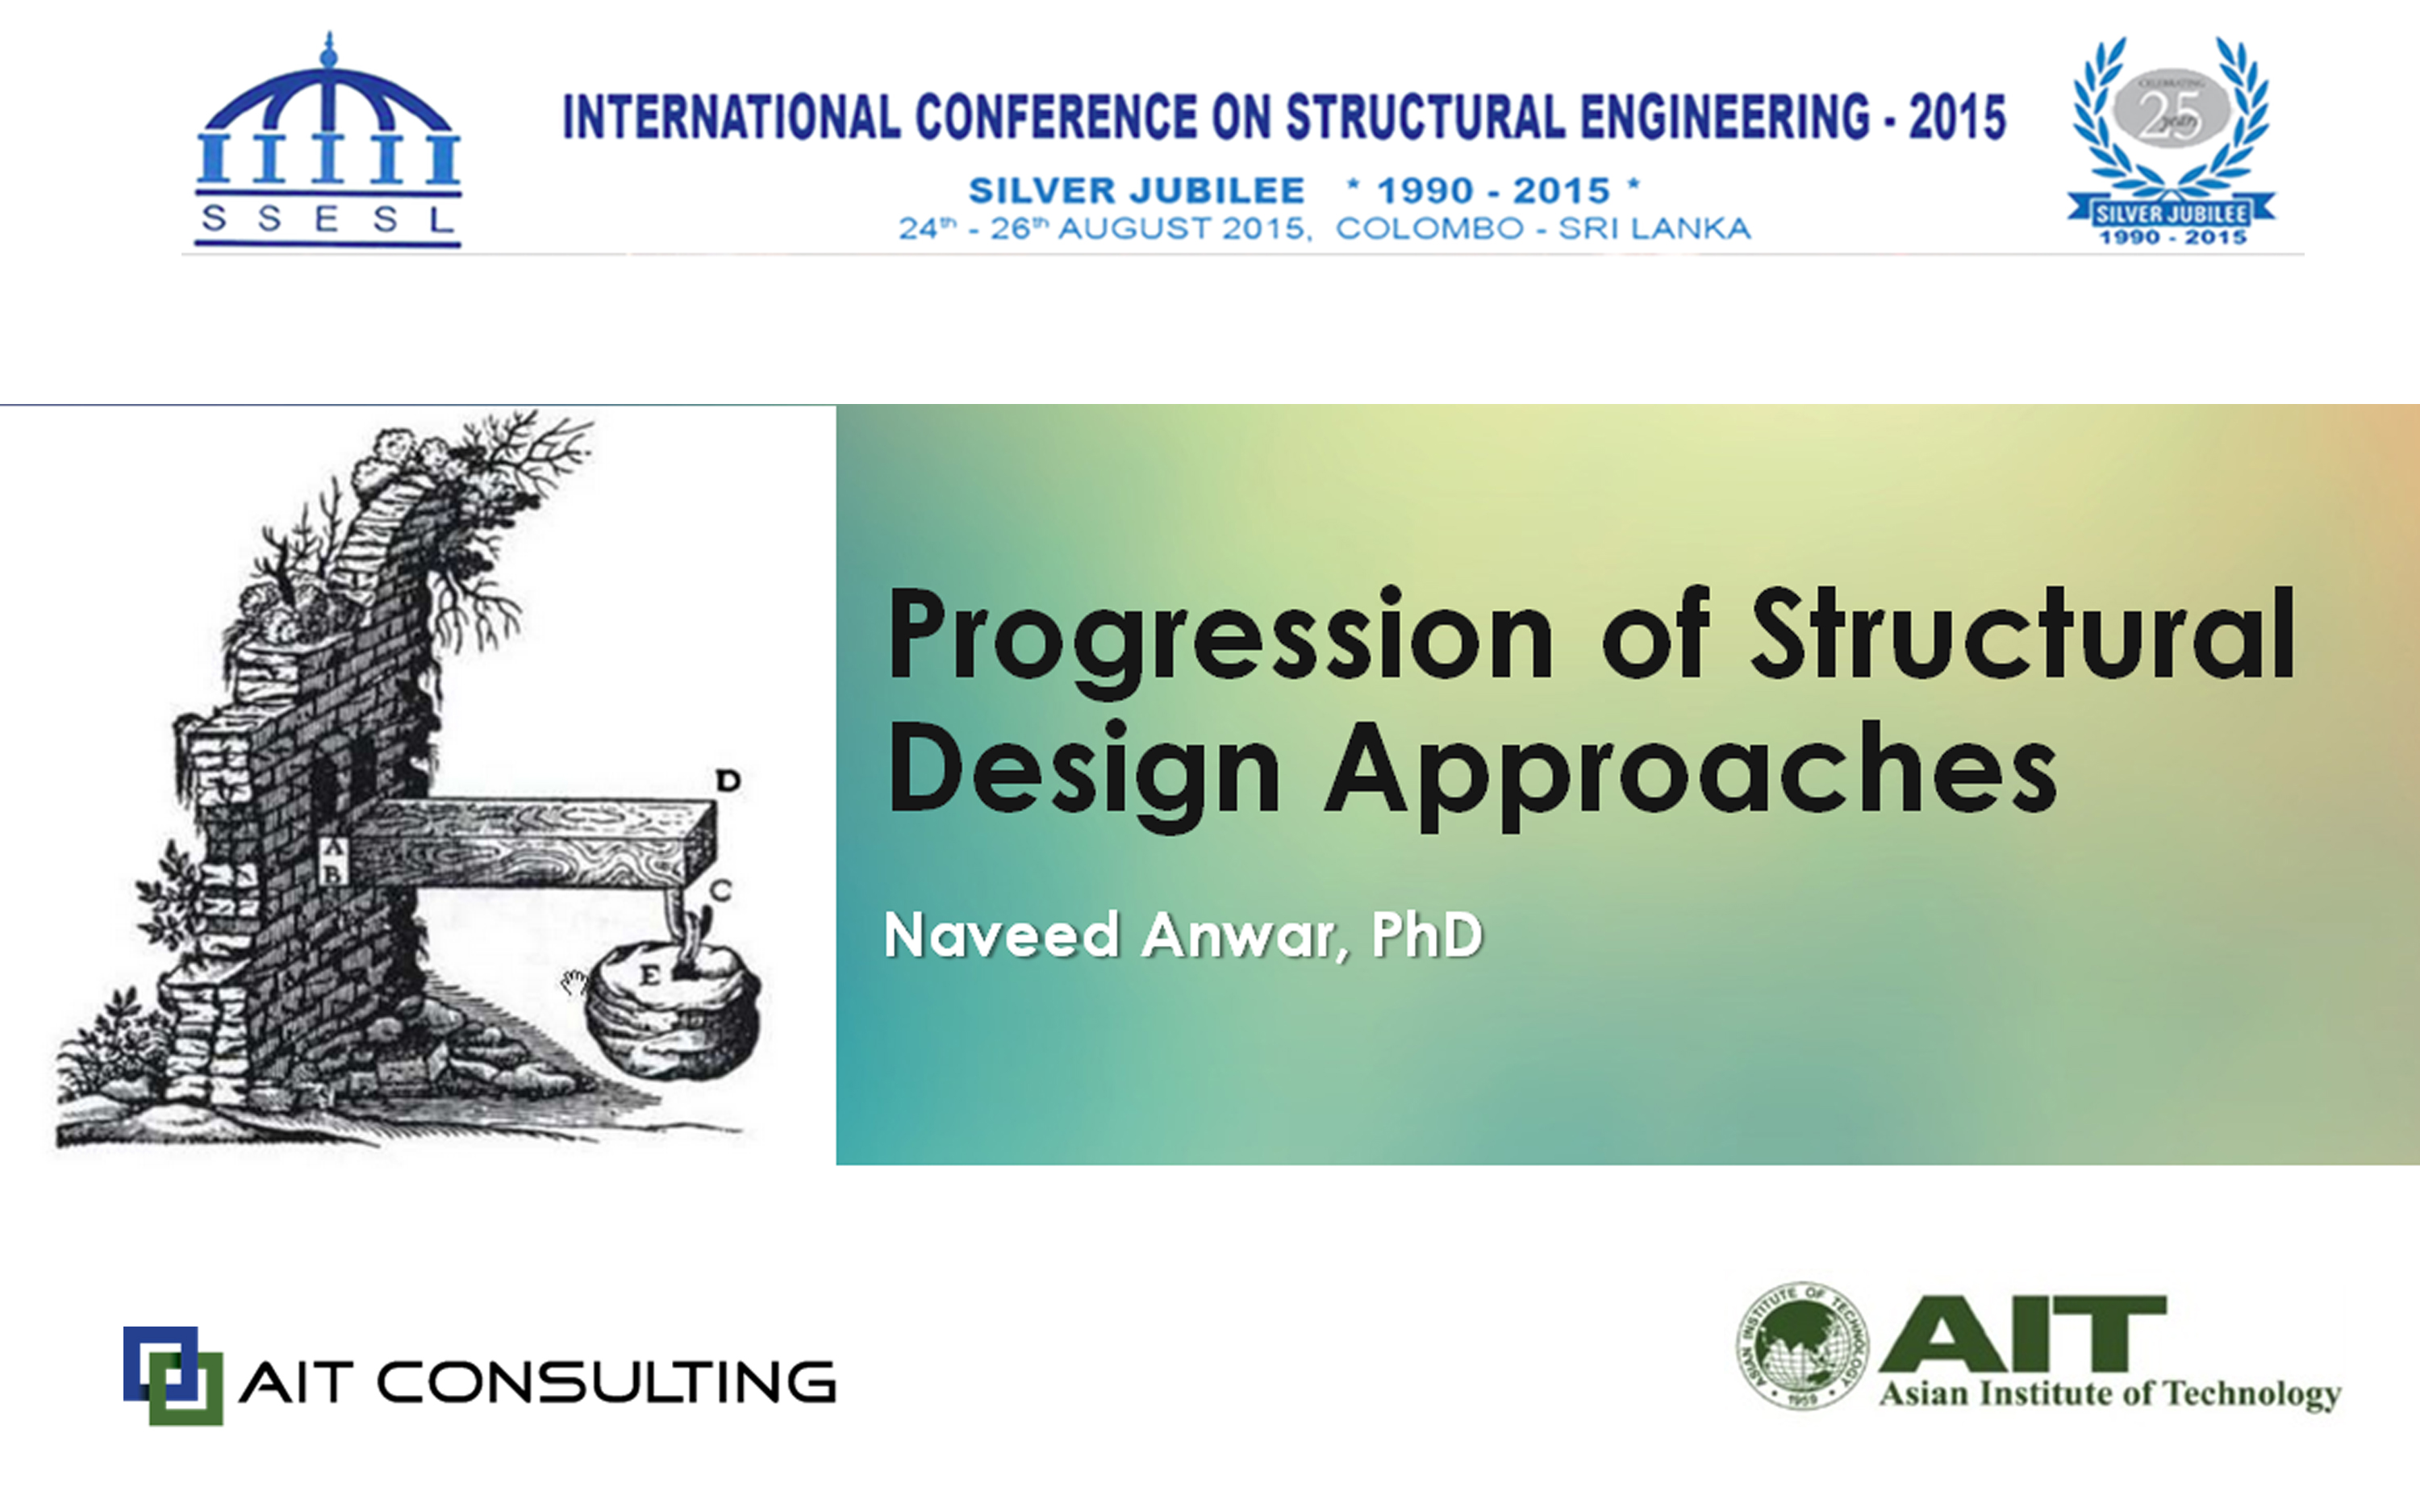 International Conference on Structural Engineering 2015